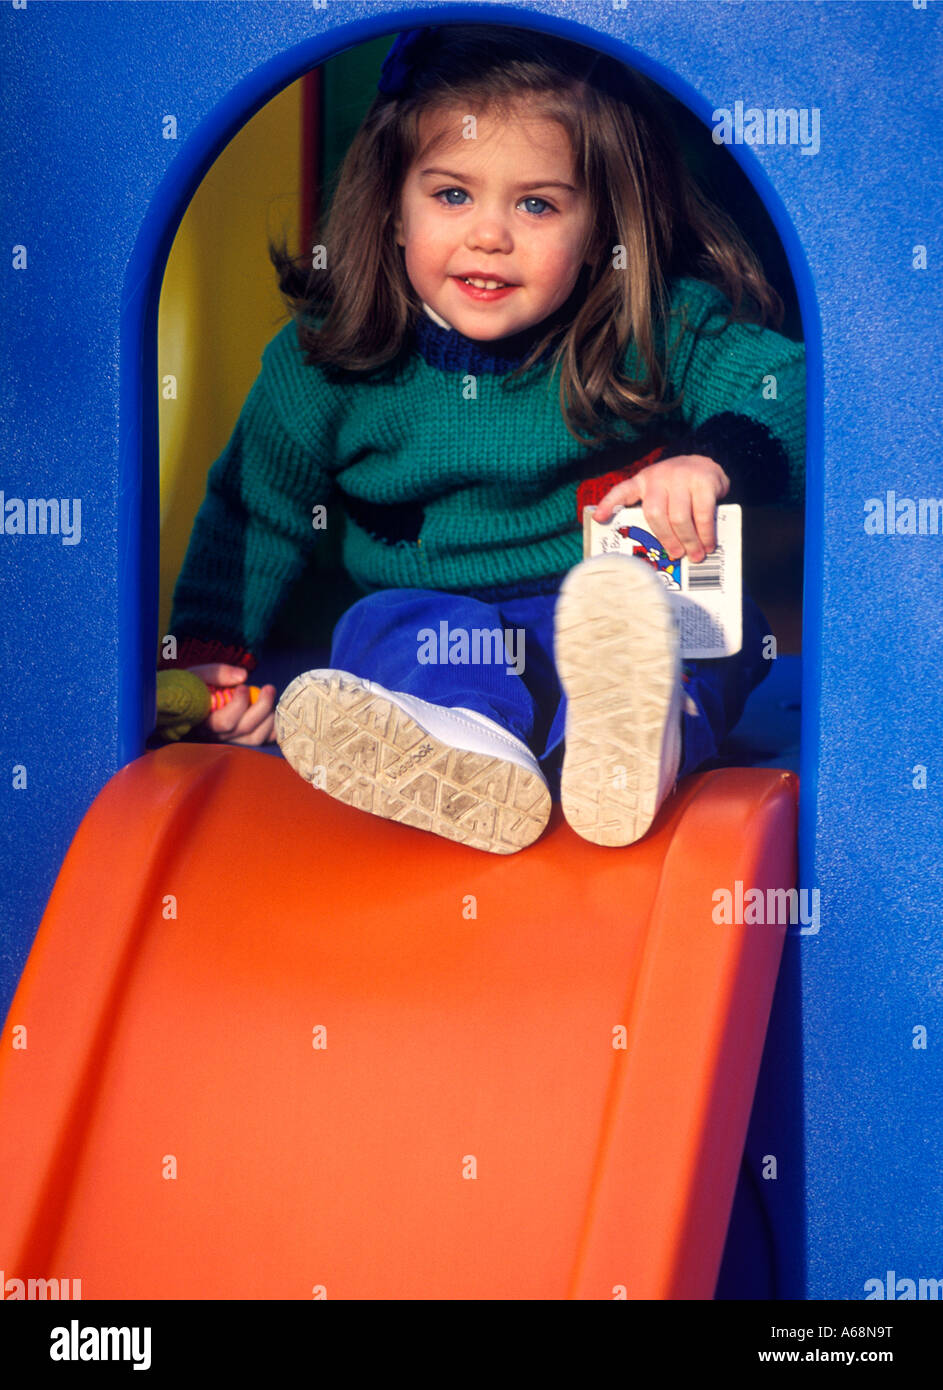 Toddler playing on playground sliding board - Stock Image